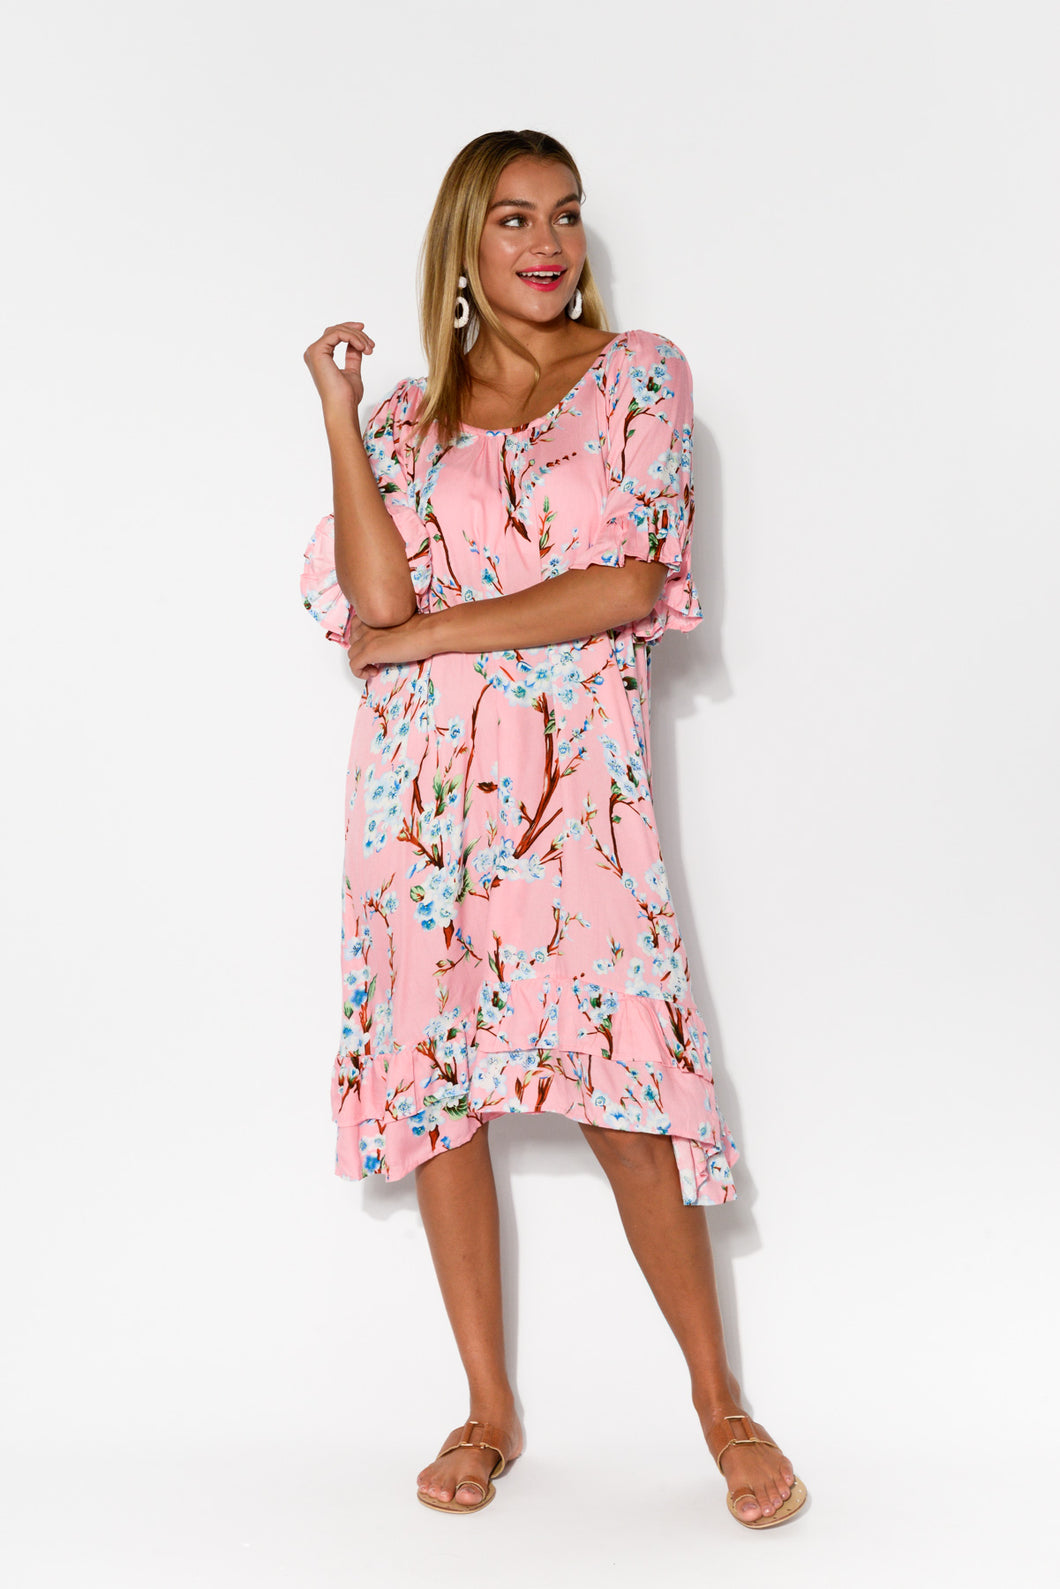 Charlotte Pink Floral Ruffle Dress - Blue Bungalow